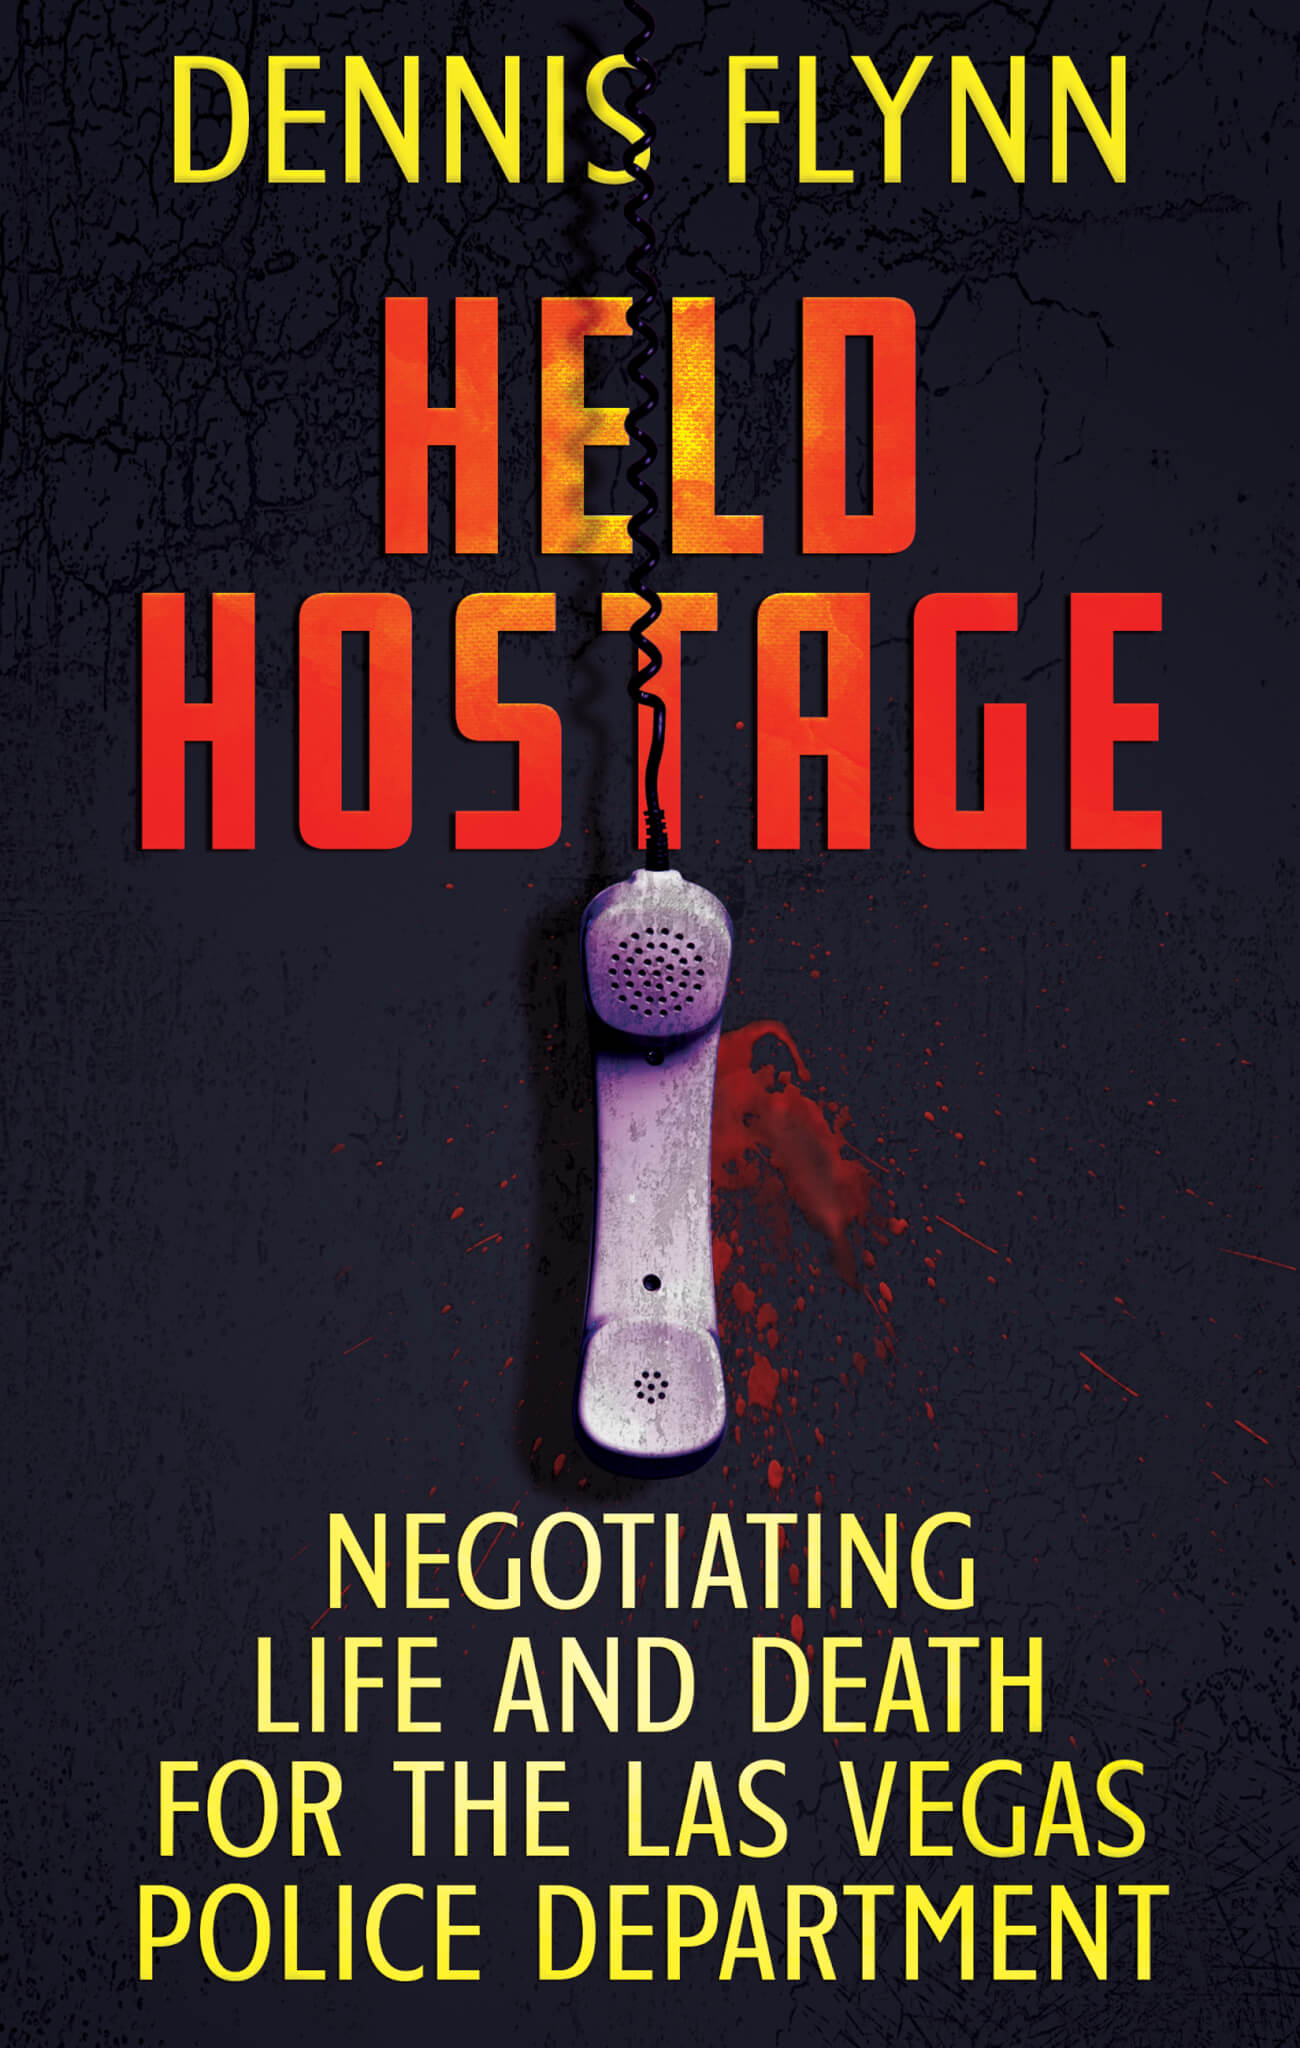 Bestseller ebooks in all genres held hostage negotiating life and death for the las vegas police department ebooks available fandeluxe Ebook collections